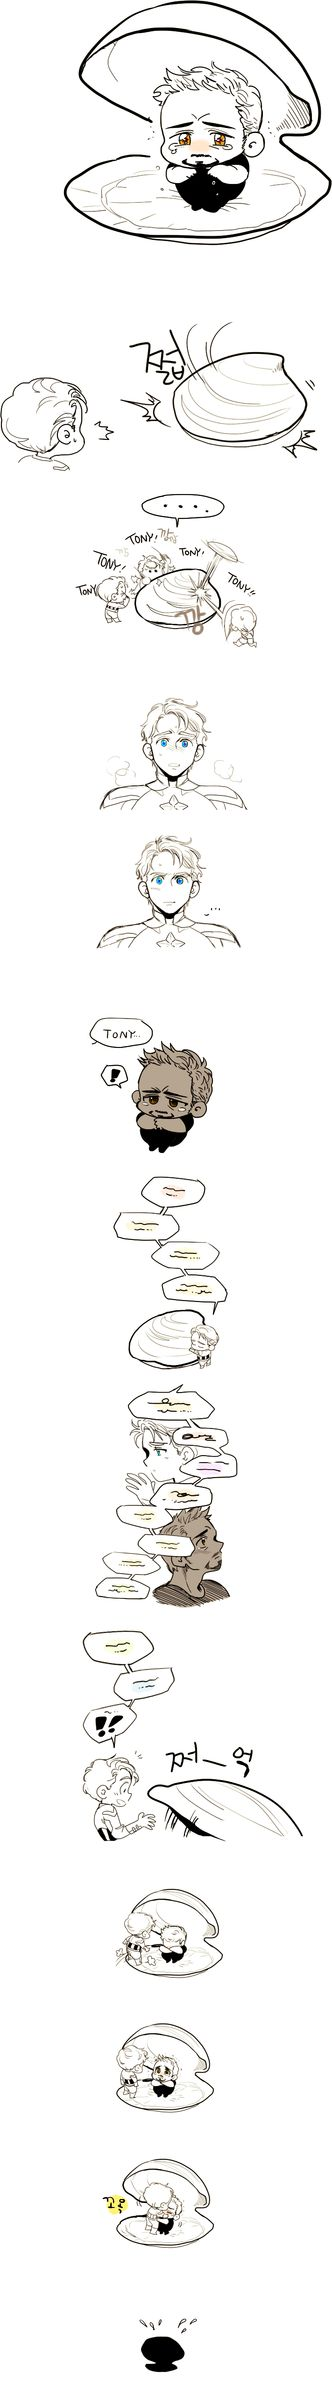 steve/tony comic by tgoamt,  This is just so cute, it warms my heart ^^